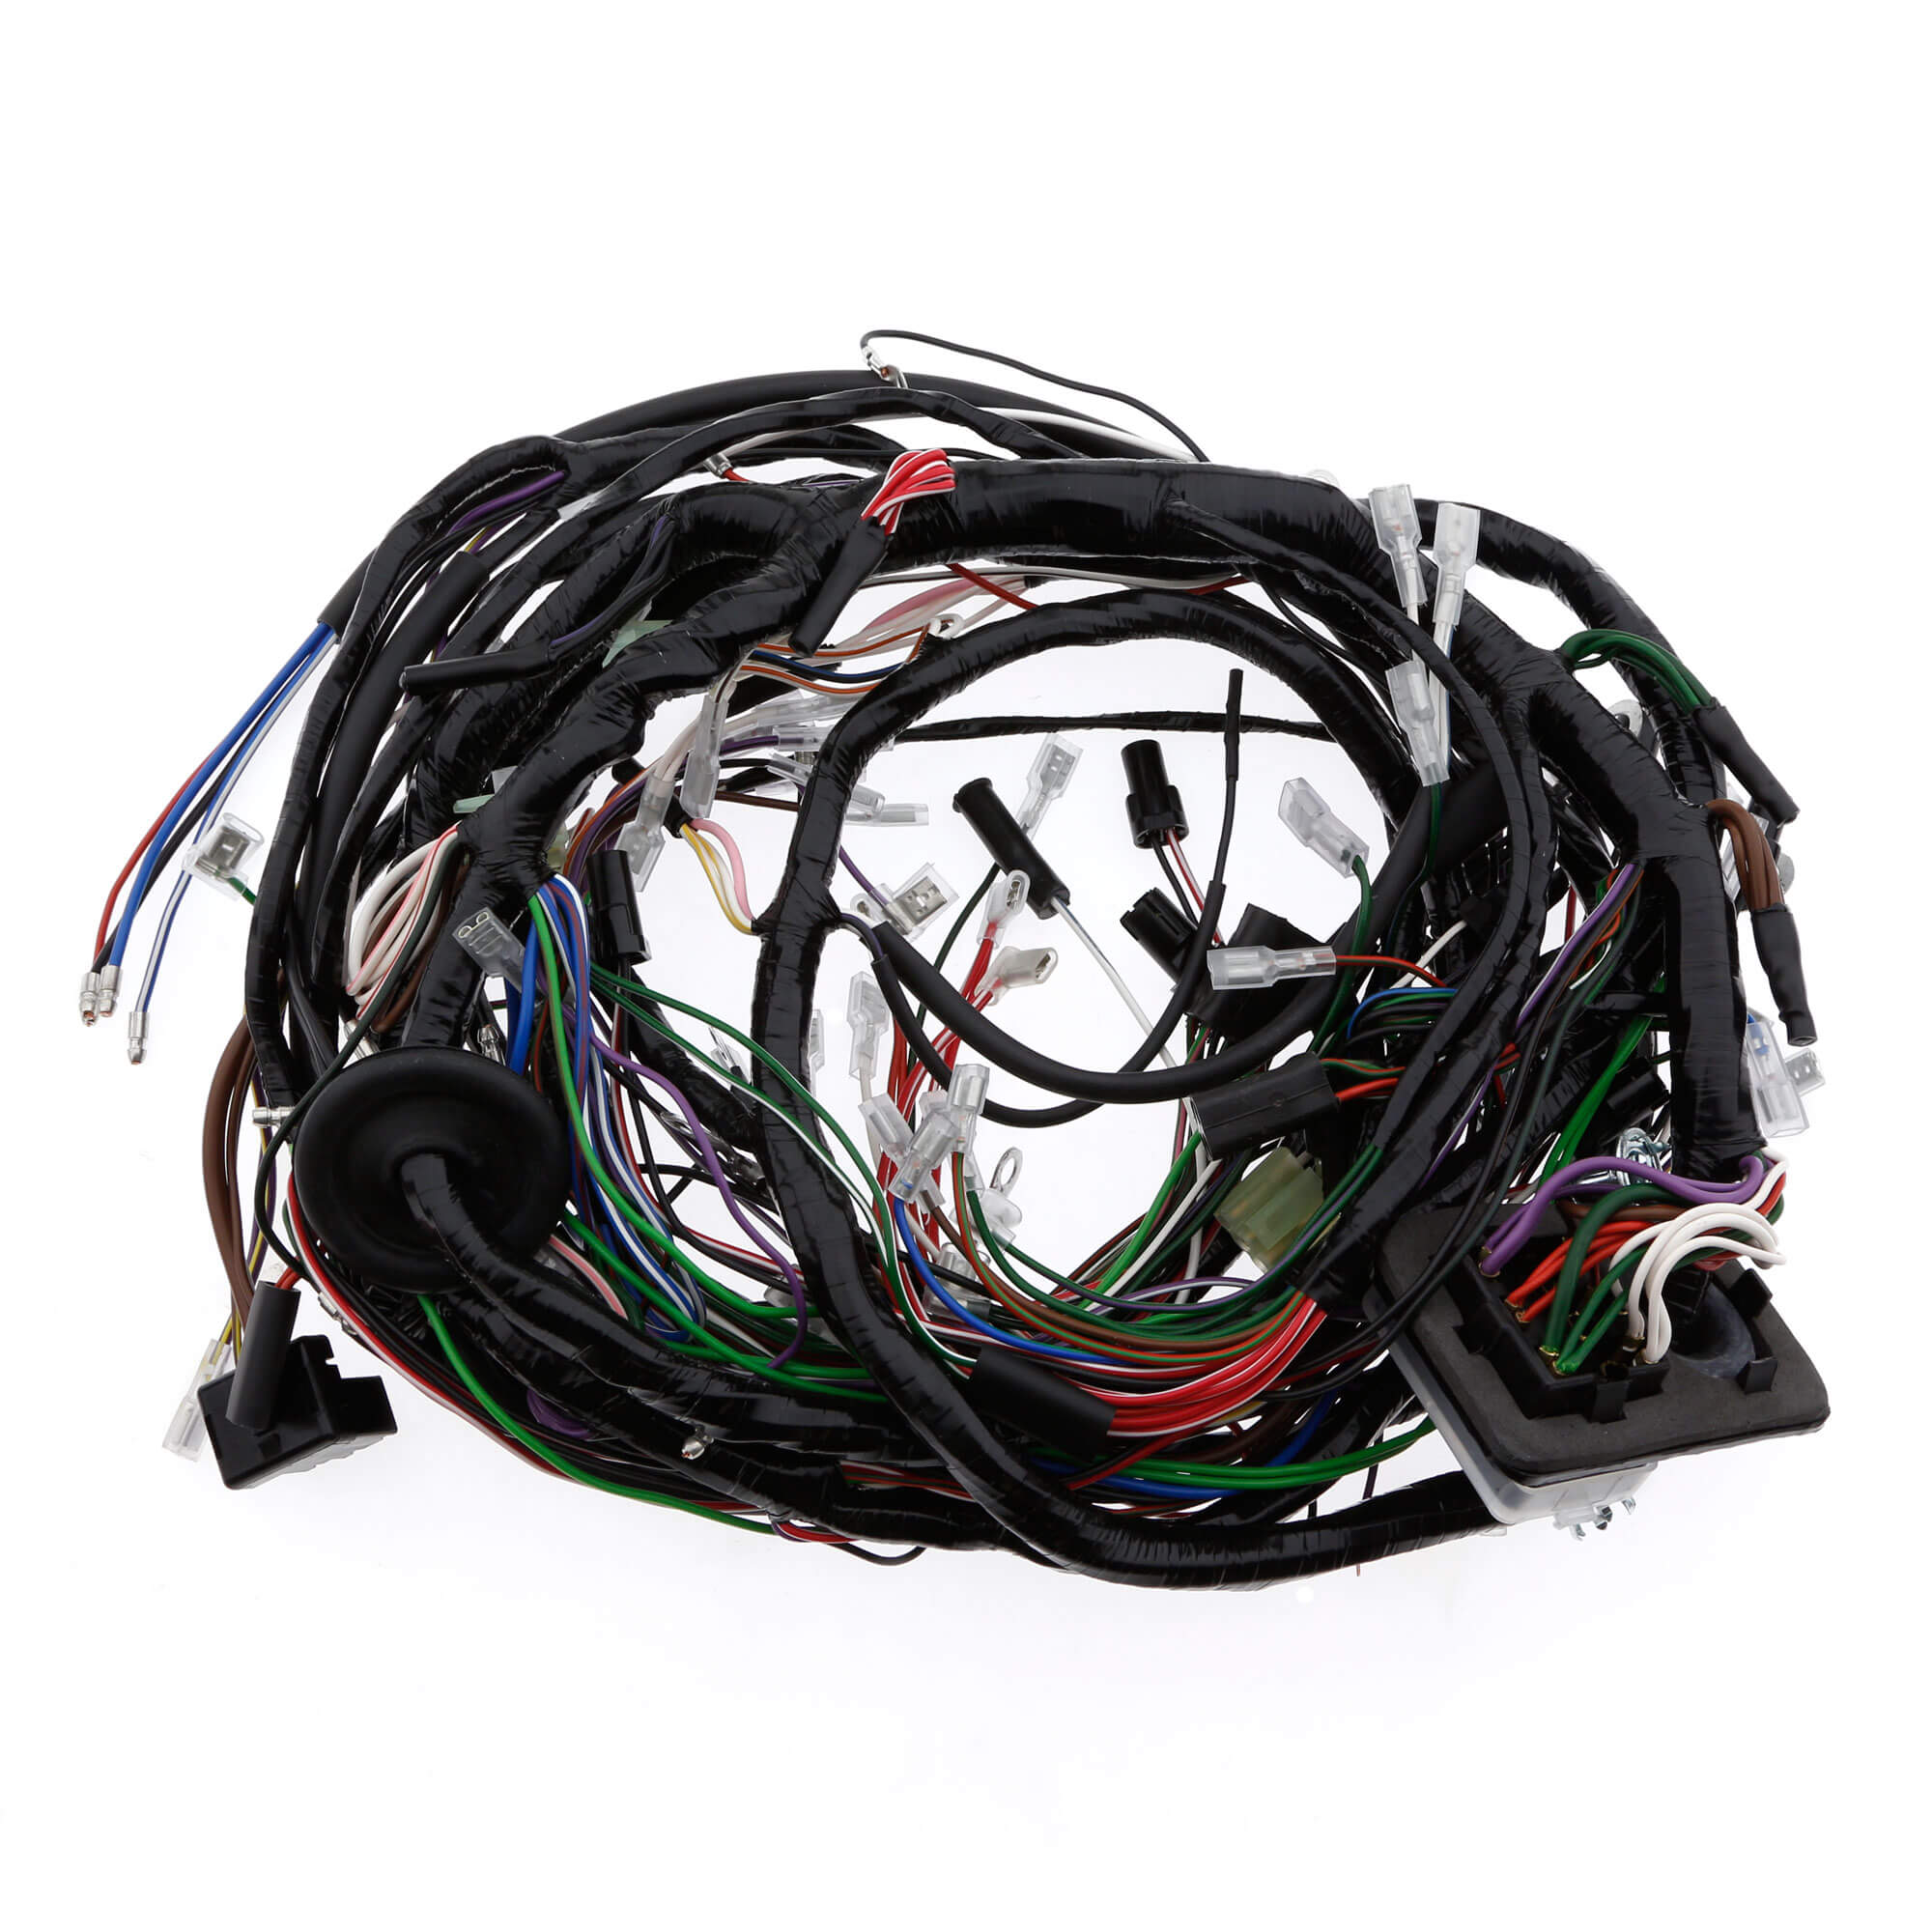 357 570 Body Wiring Harness Moss Motors Main Triumph Spitfire